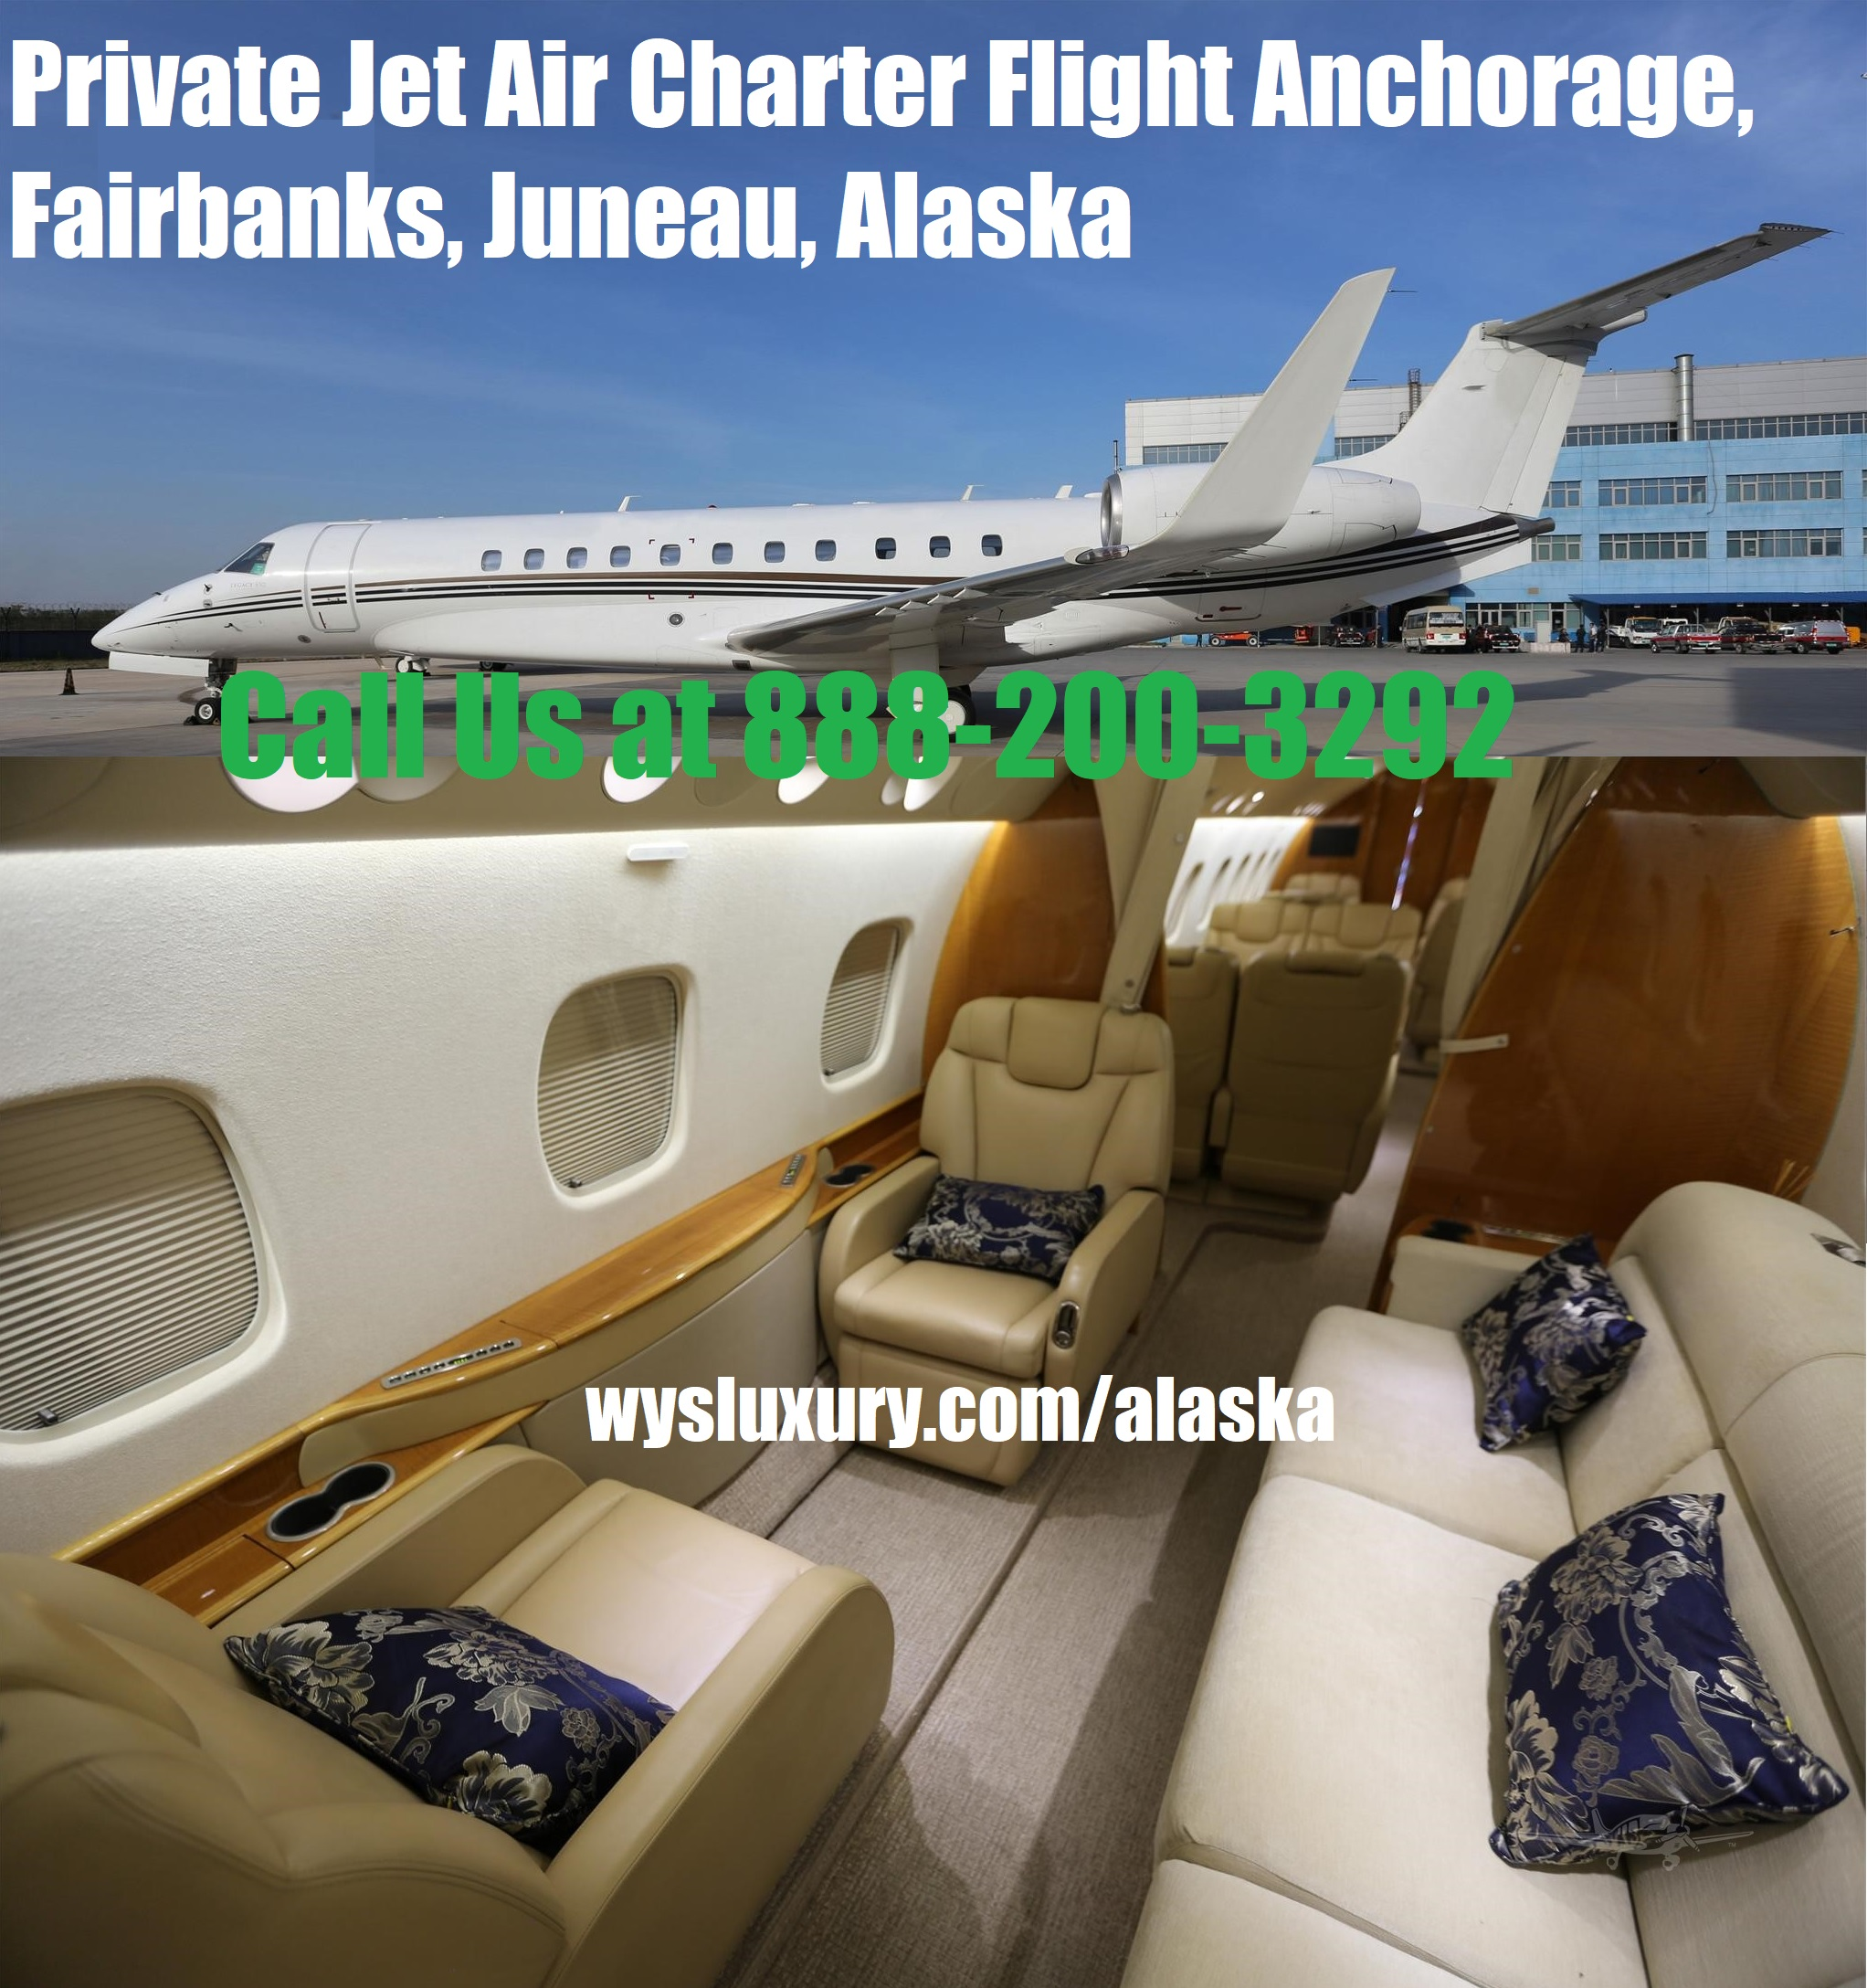 Private Jet Air Charter Flight Anchorage, Fairbanks